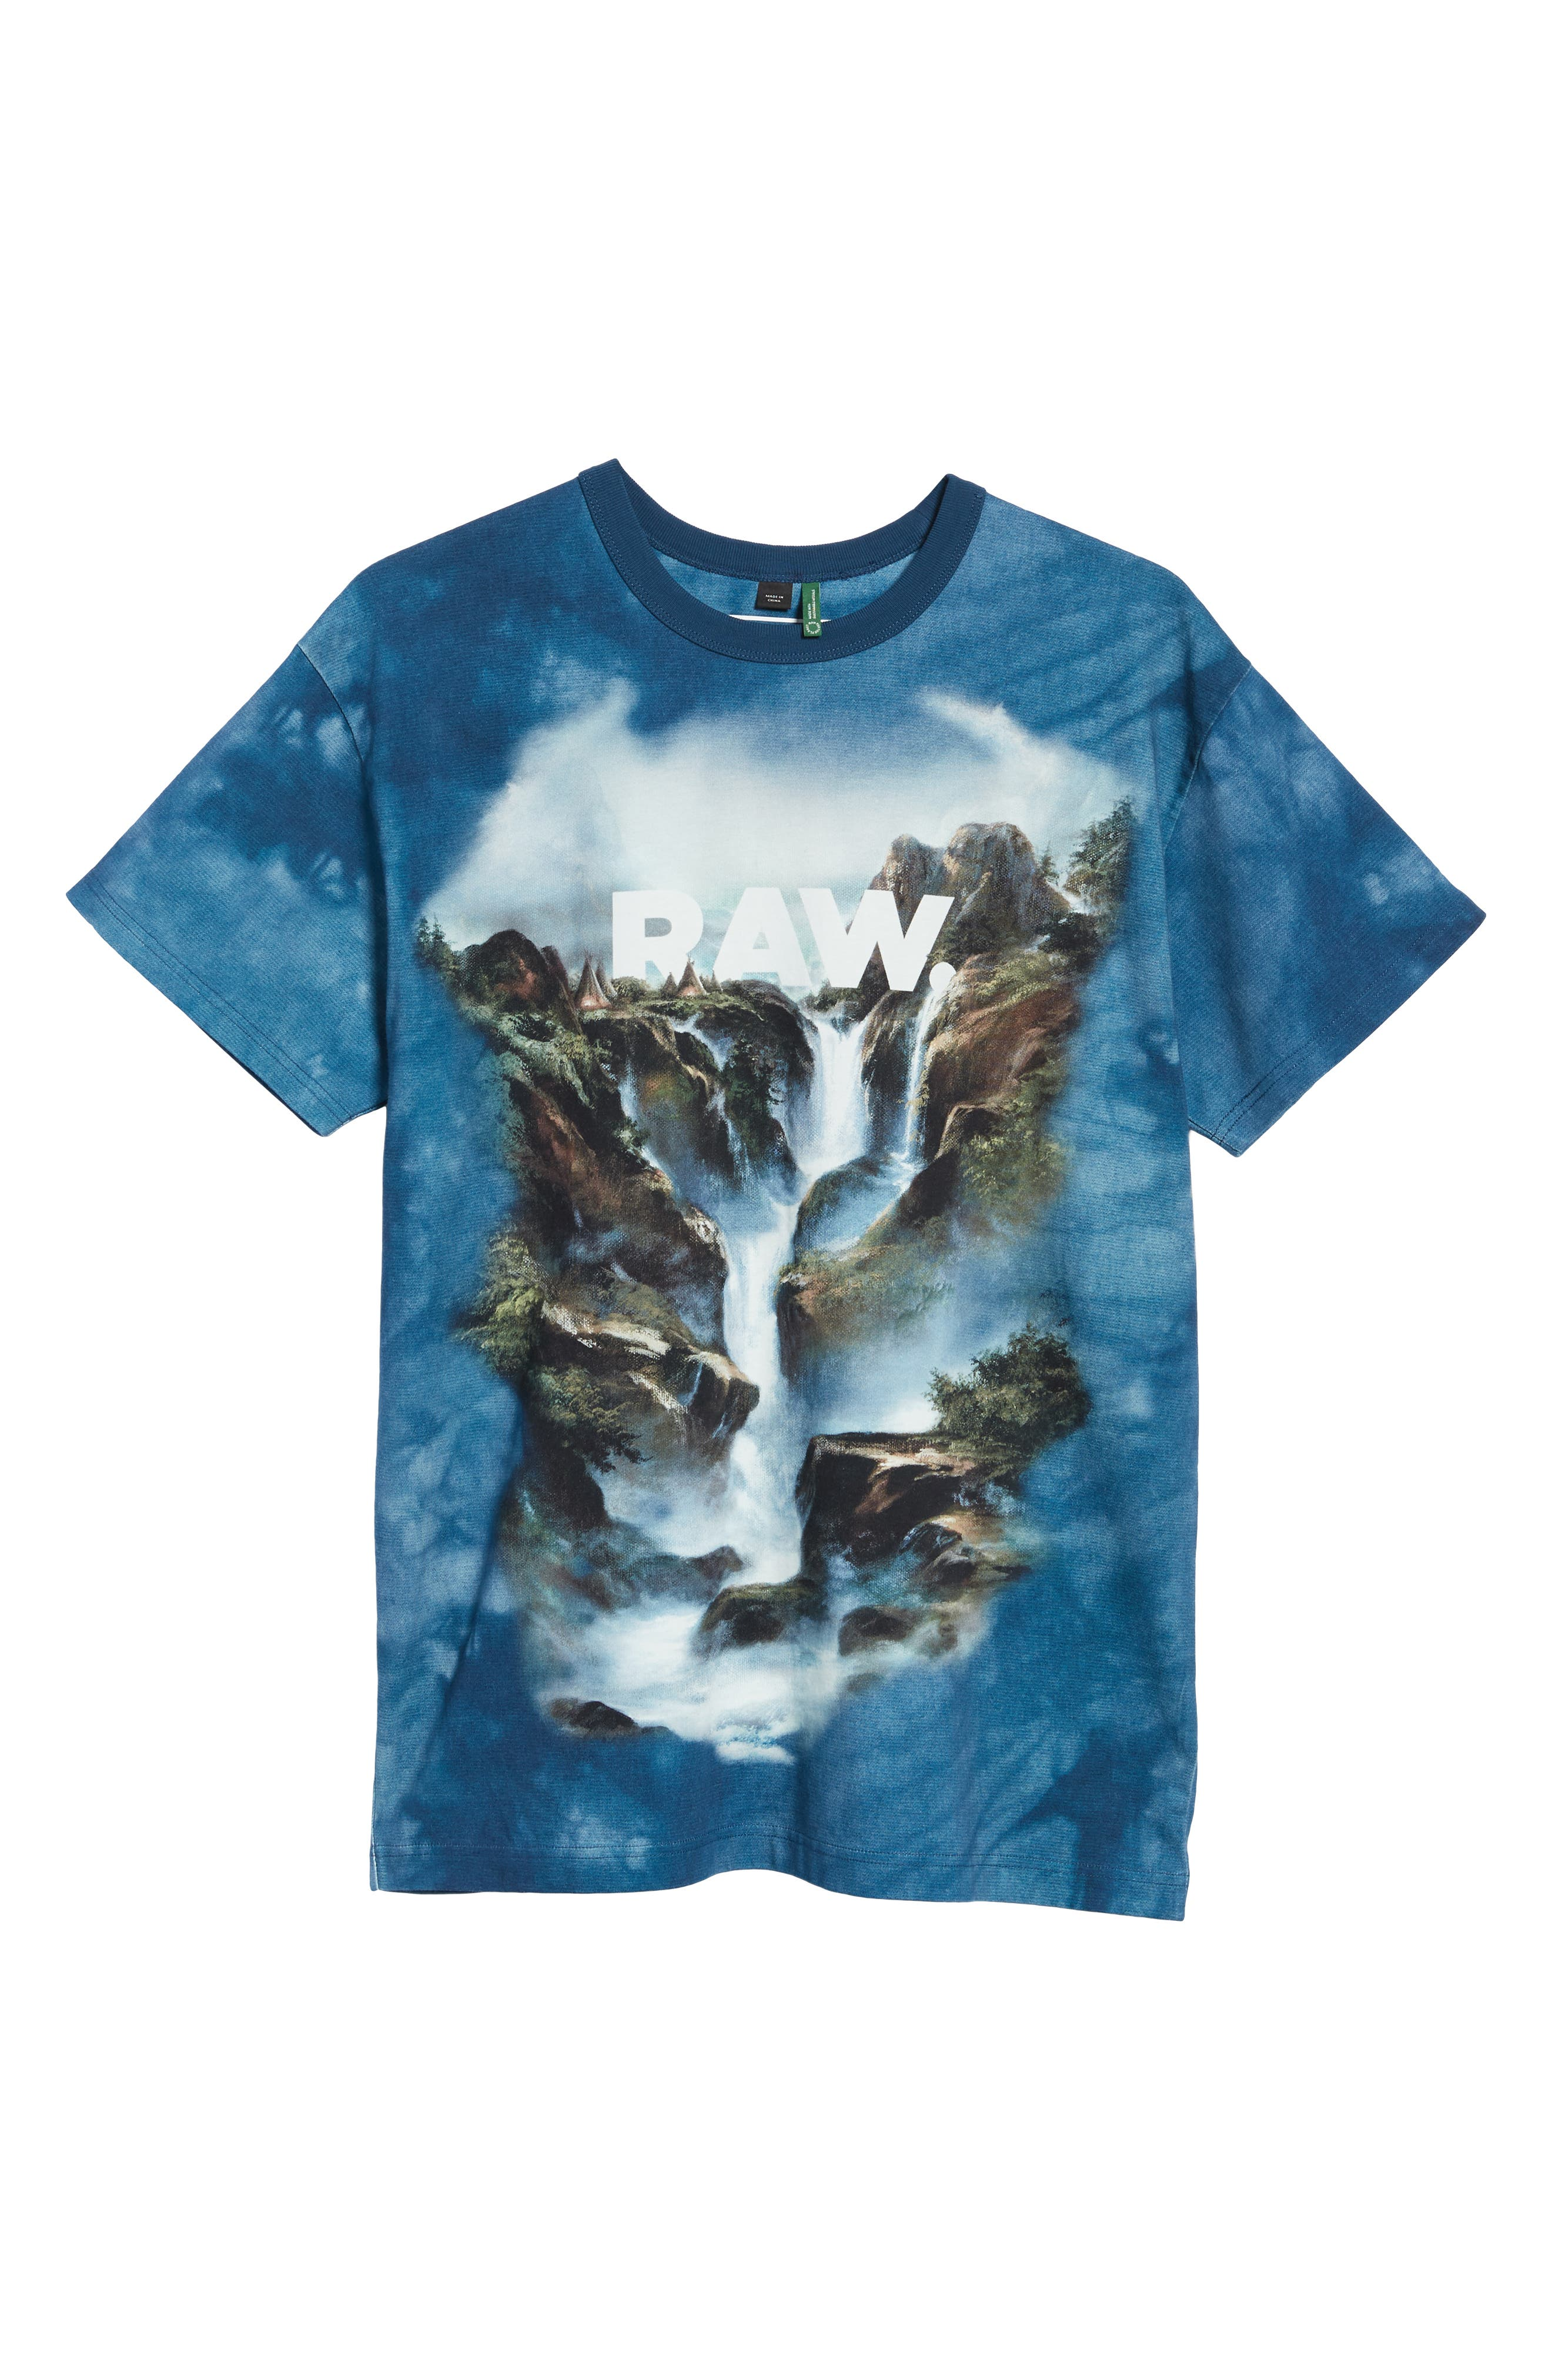 G-Star Cyrer Waterfall Loose T-Shirt,                             Alternate thumbnail 6, color,                             TEAL BLUE